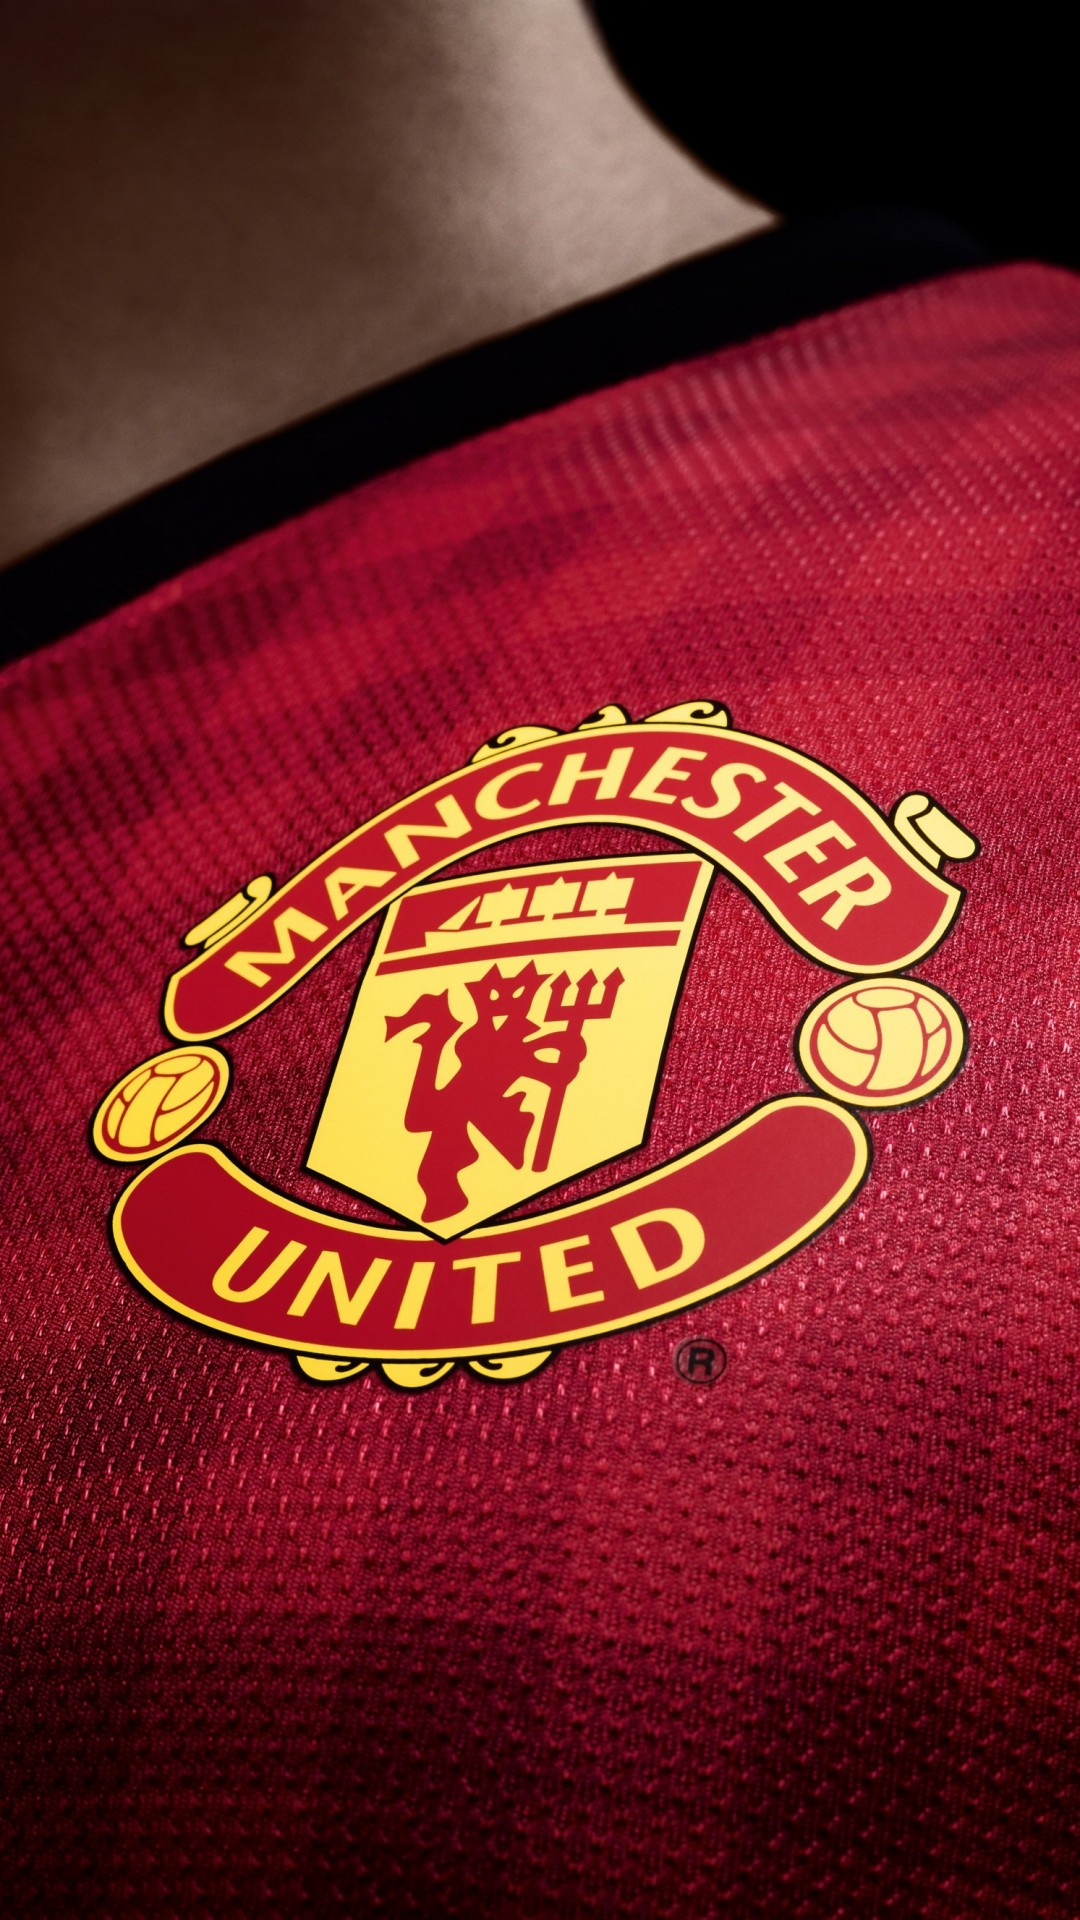 Manchester United Logo Shirt Wallpaper for SONY Xperia Z3